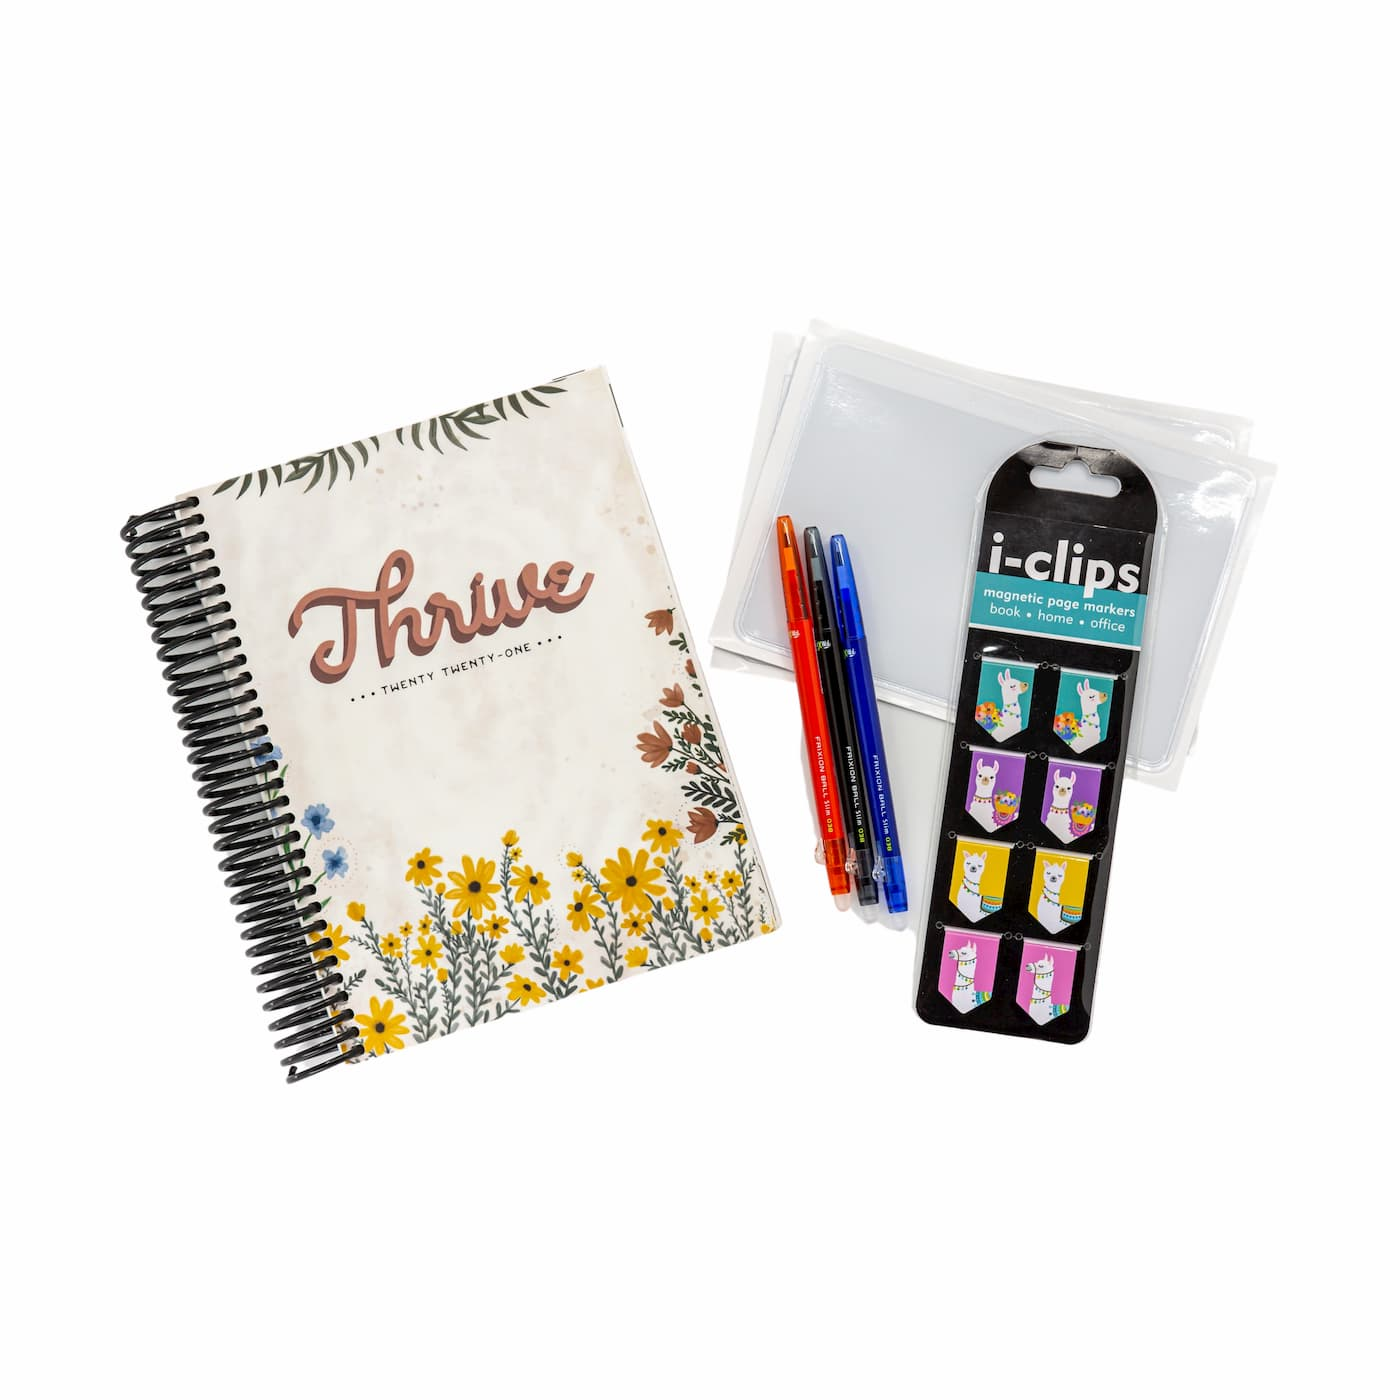 2021 Classic Weekly Planner with Nerd Kit